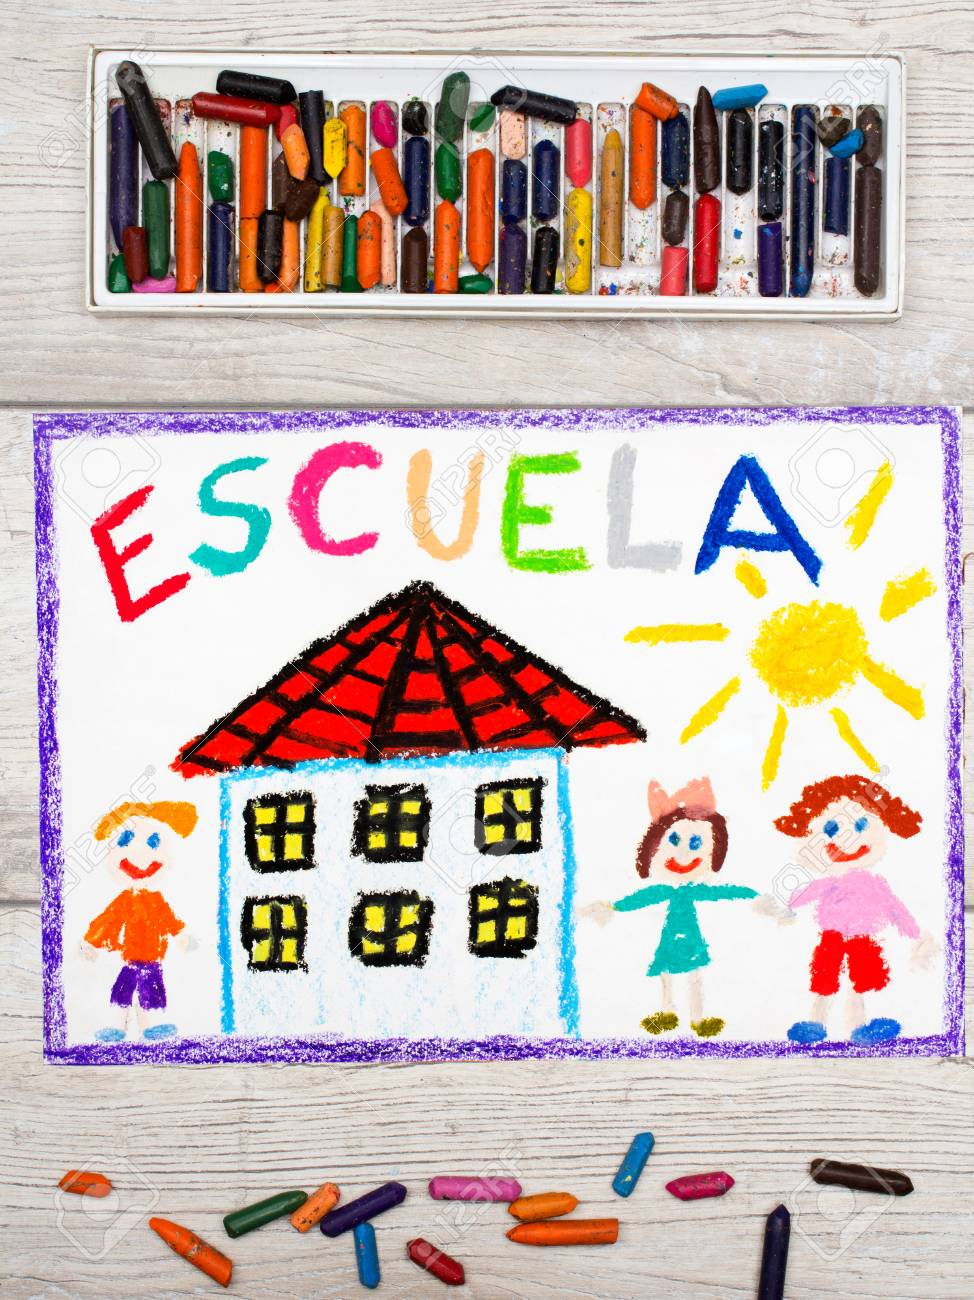 974x1300 Photo Of Colorful Drawing Spanish School, School Building